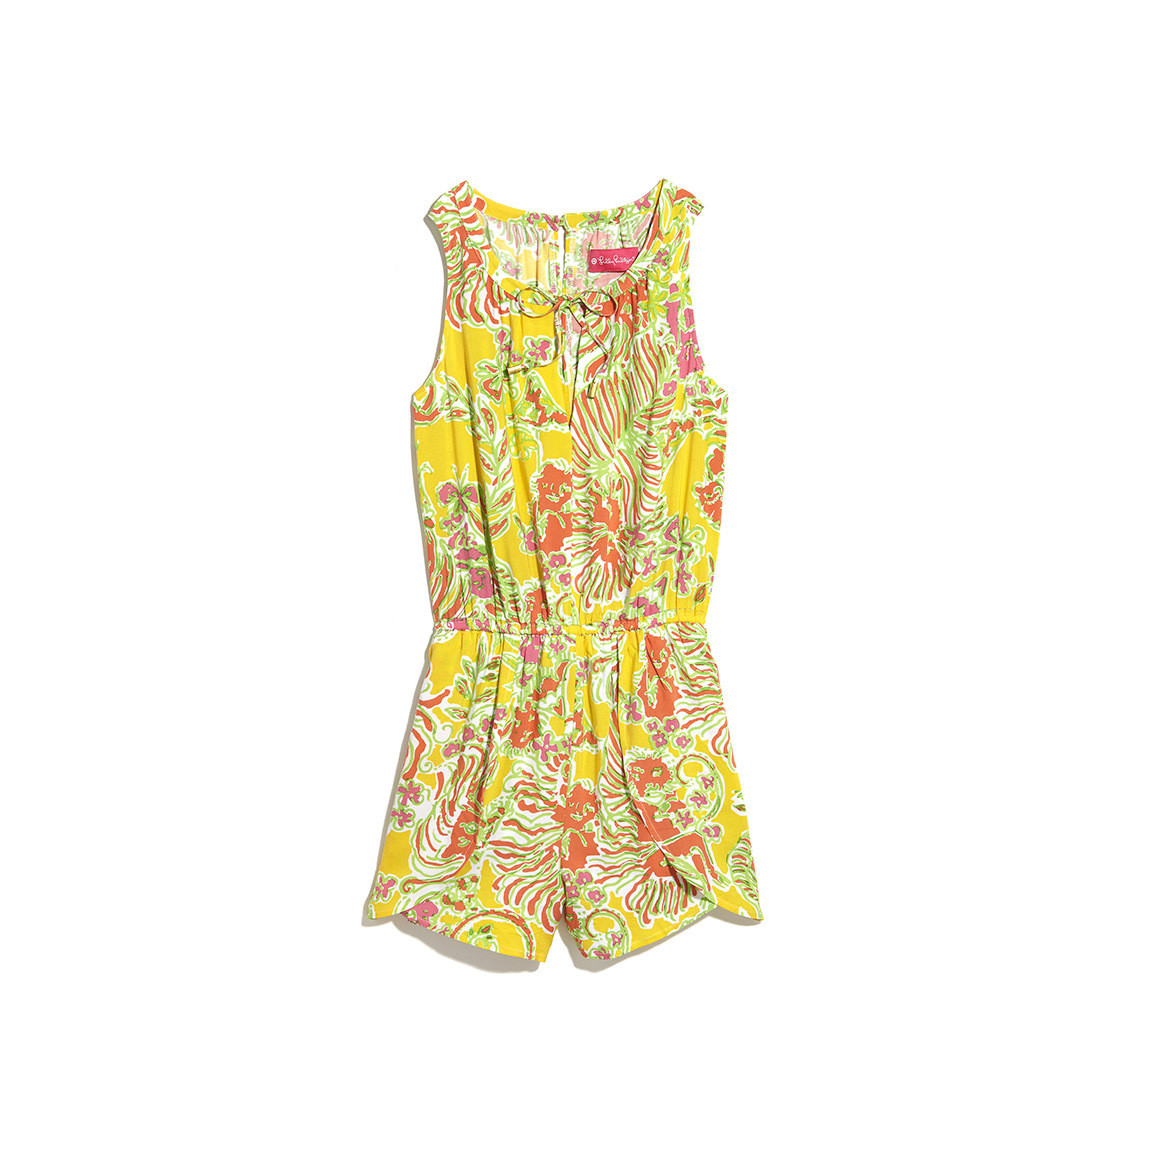 The Wait is Over: Lilly Pulitzer for Target is Here